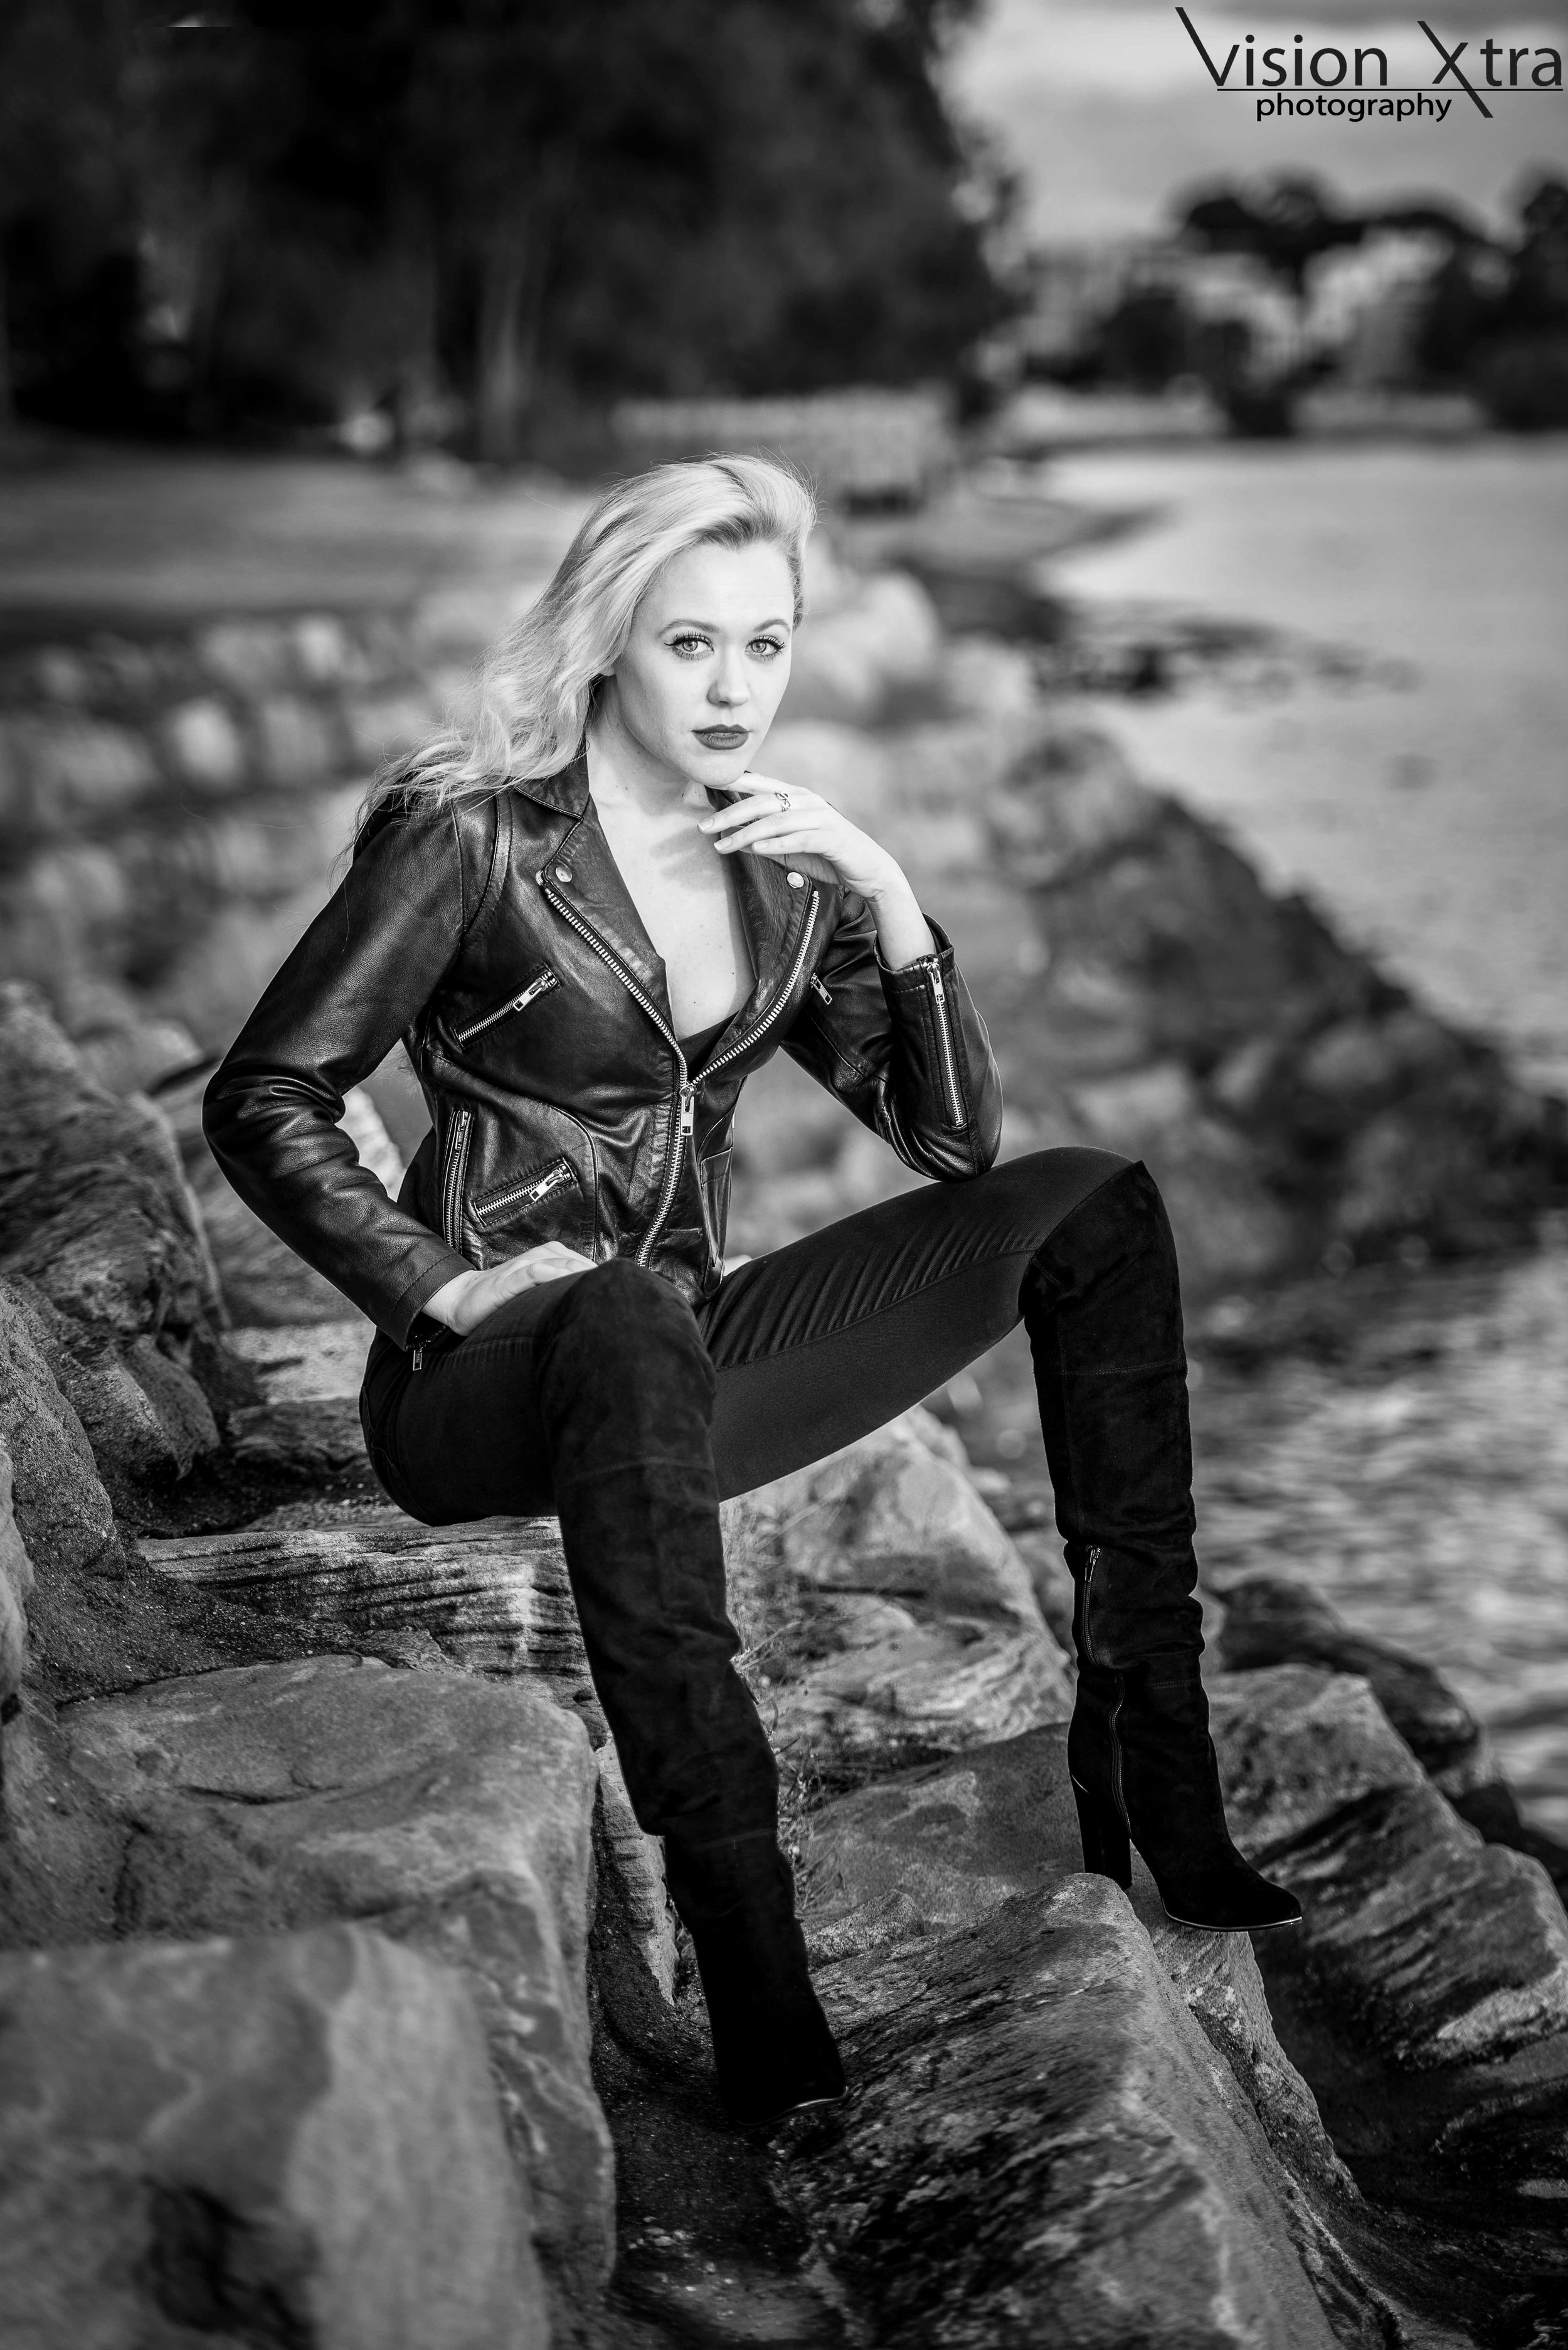 Leather B&W with Vision Xtra CLARA HELMS.jpg